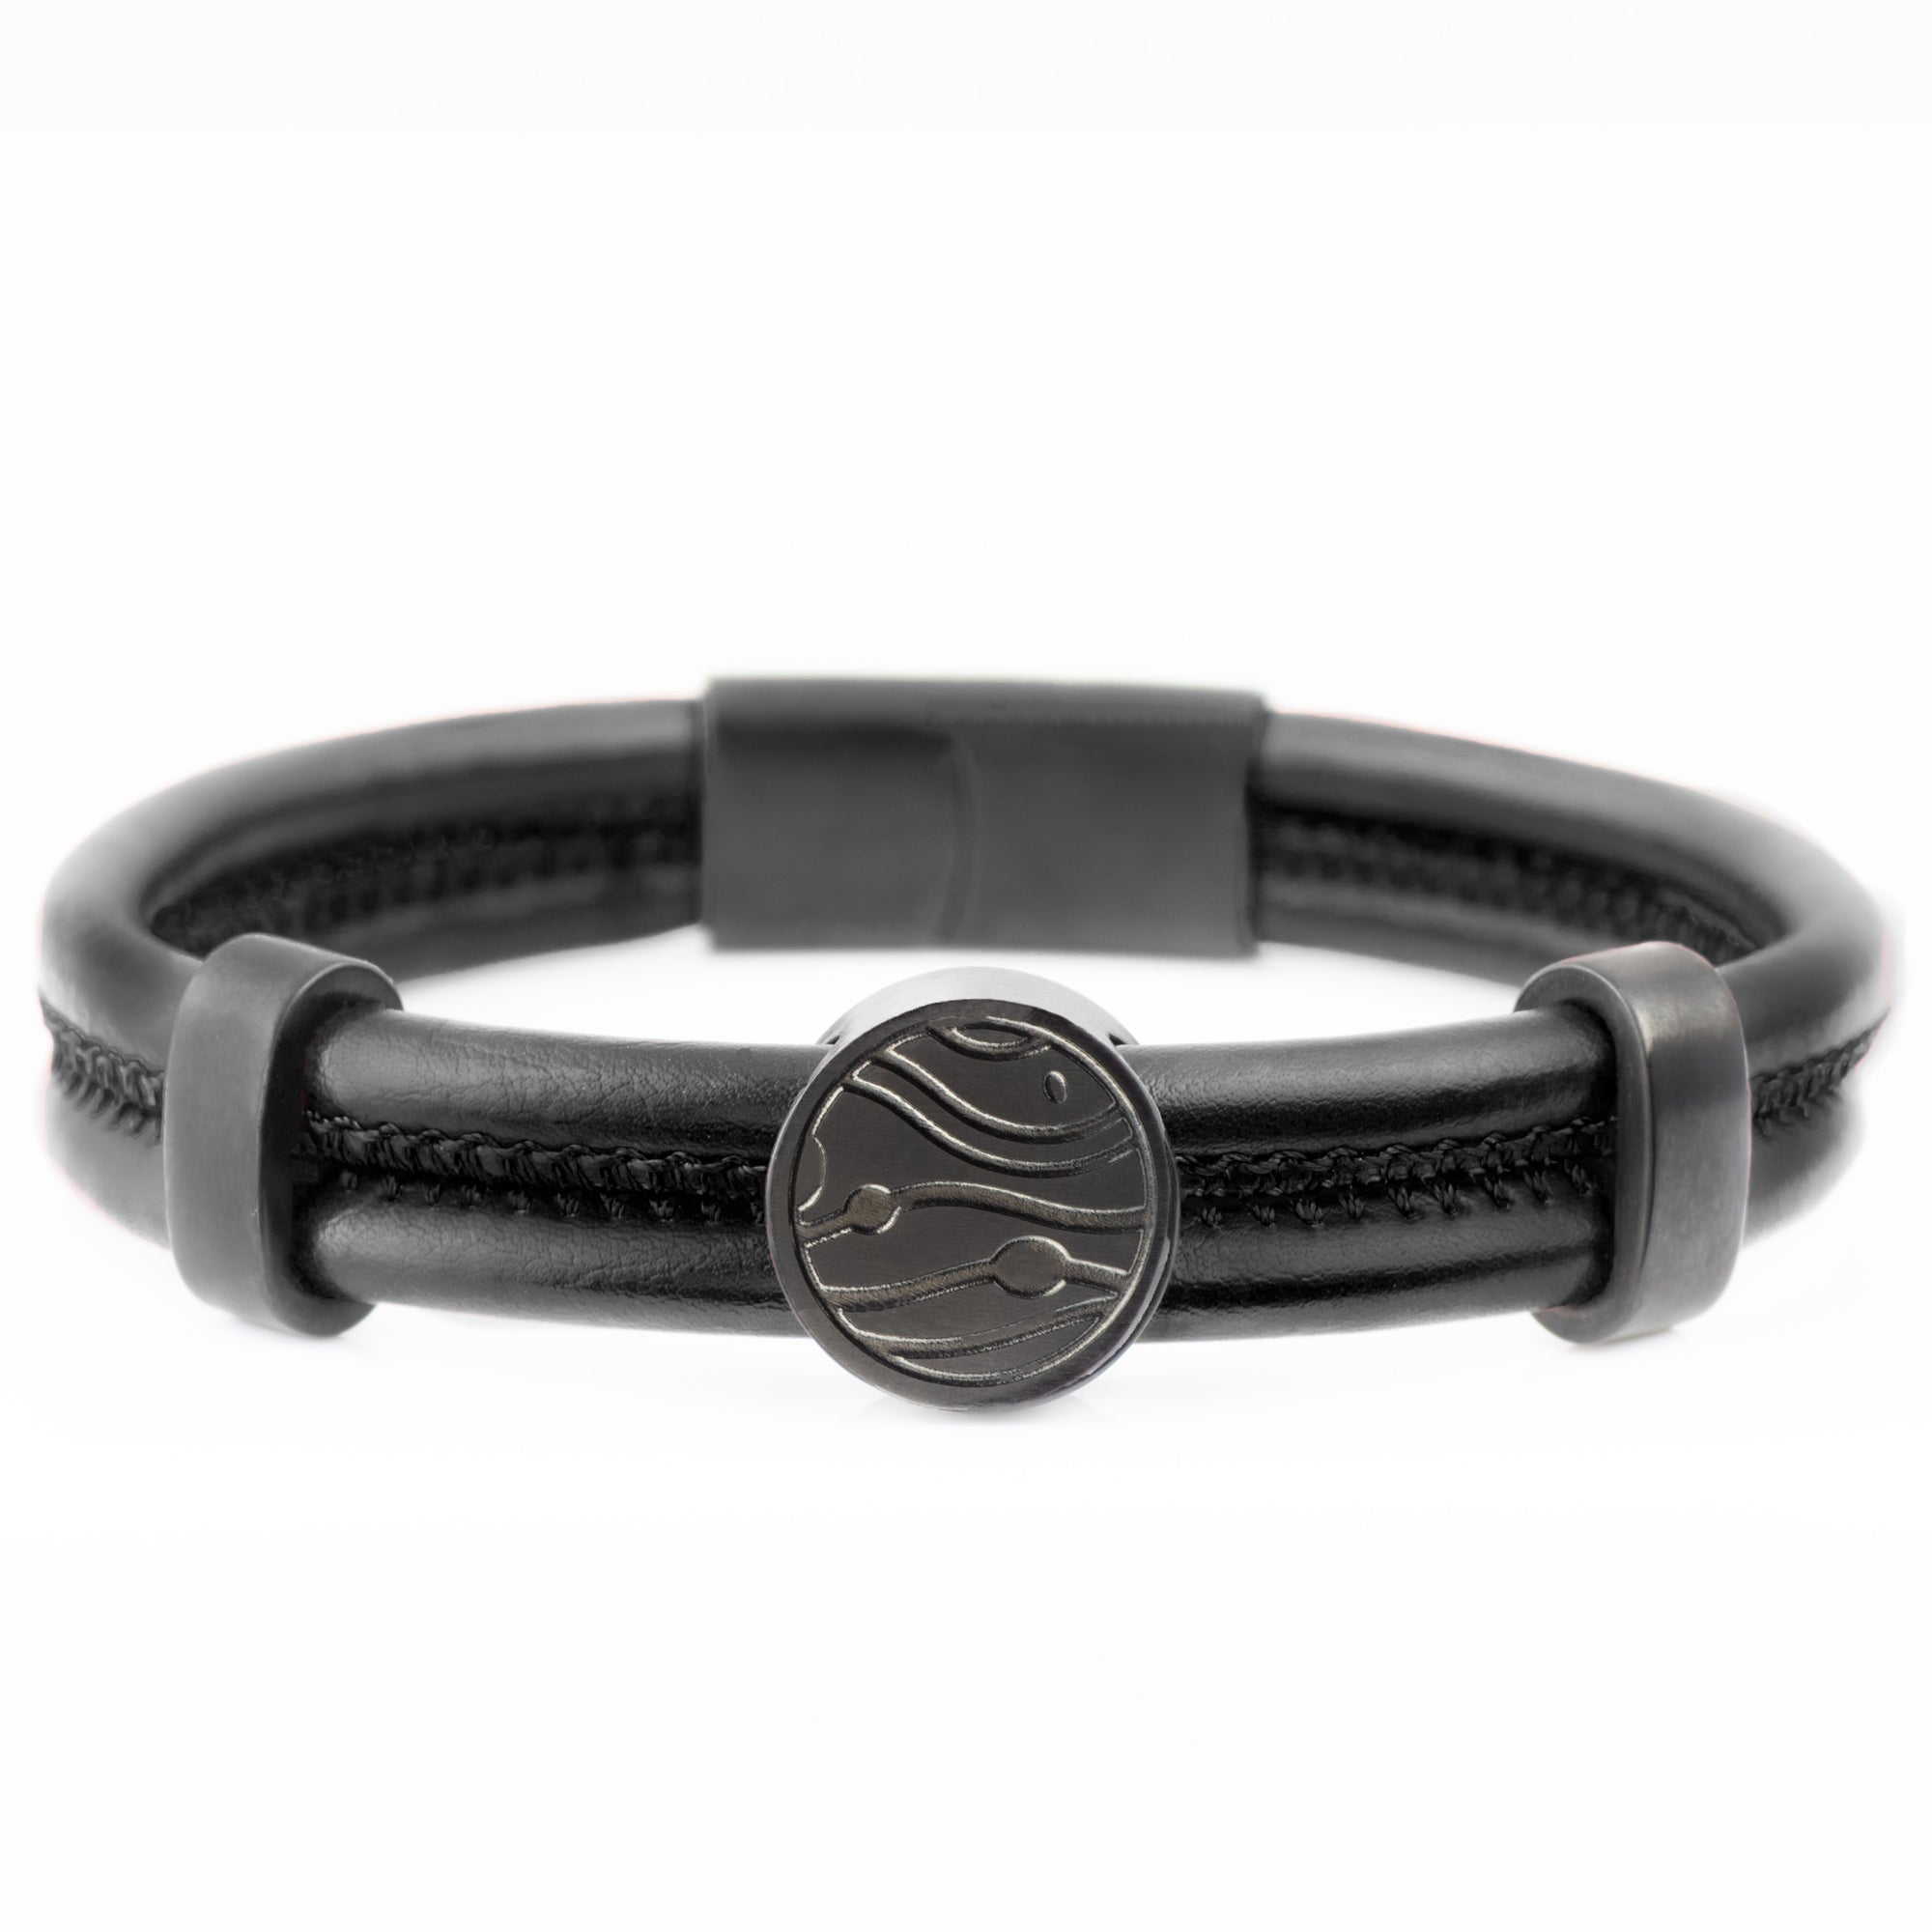 The Rune Bracelet - Black - Marssos